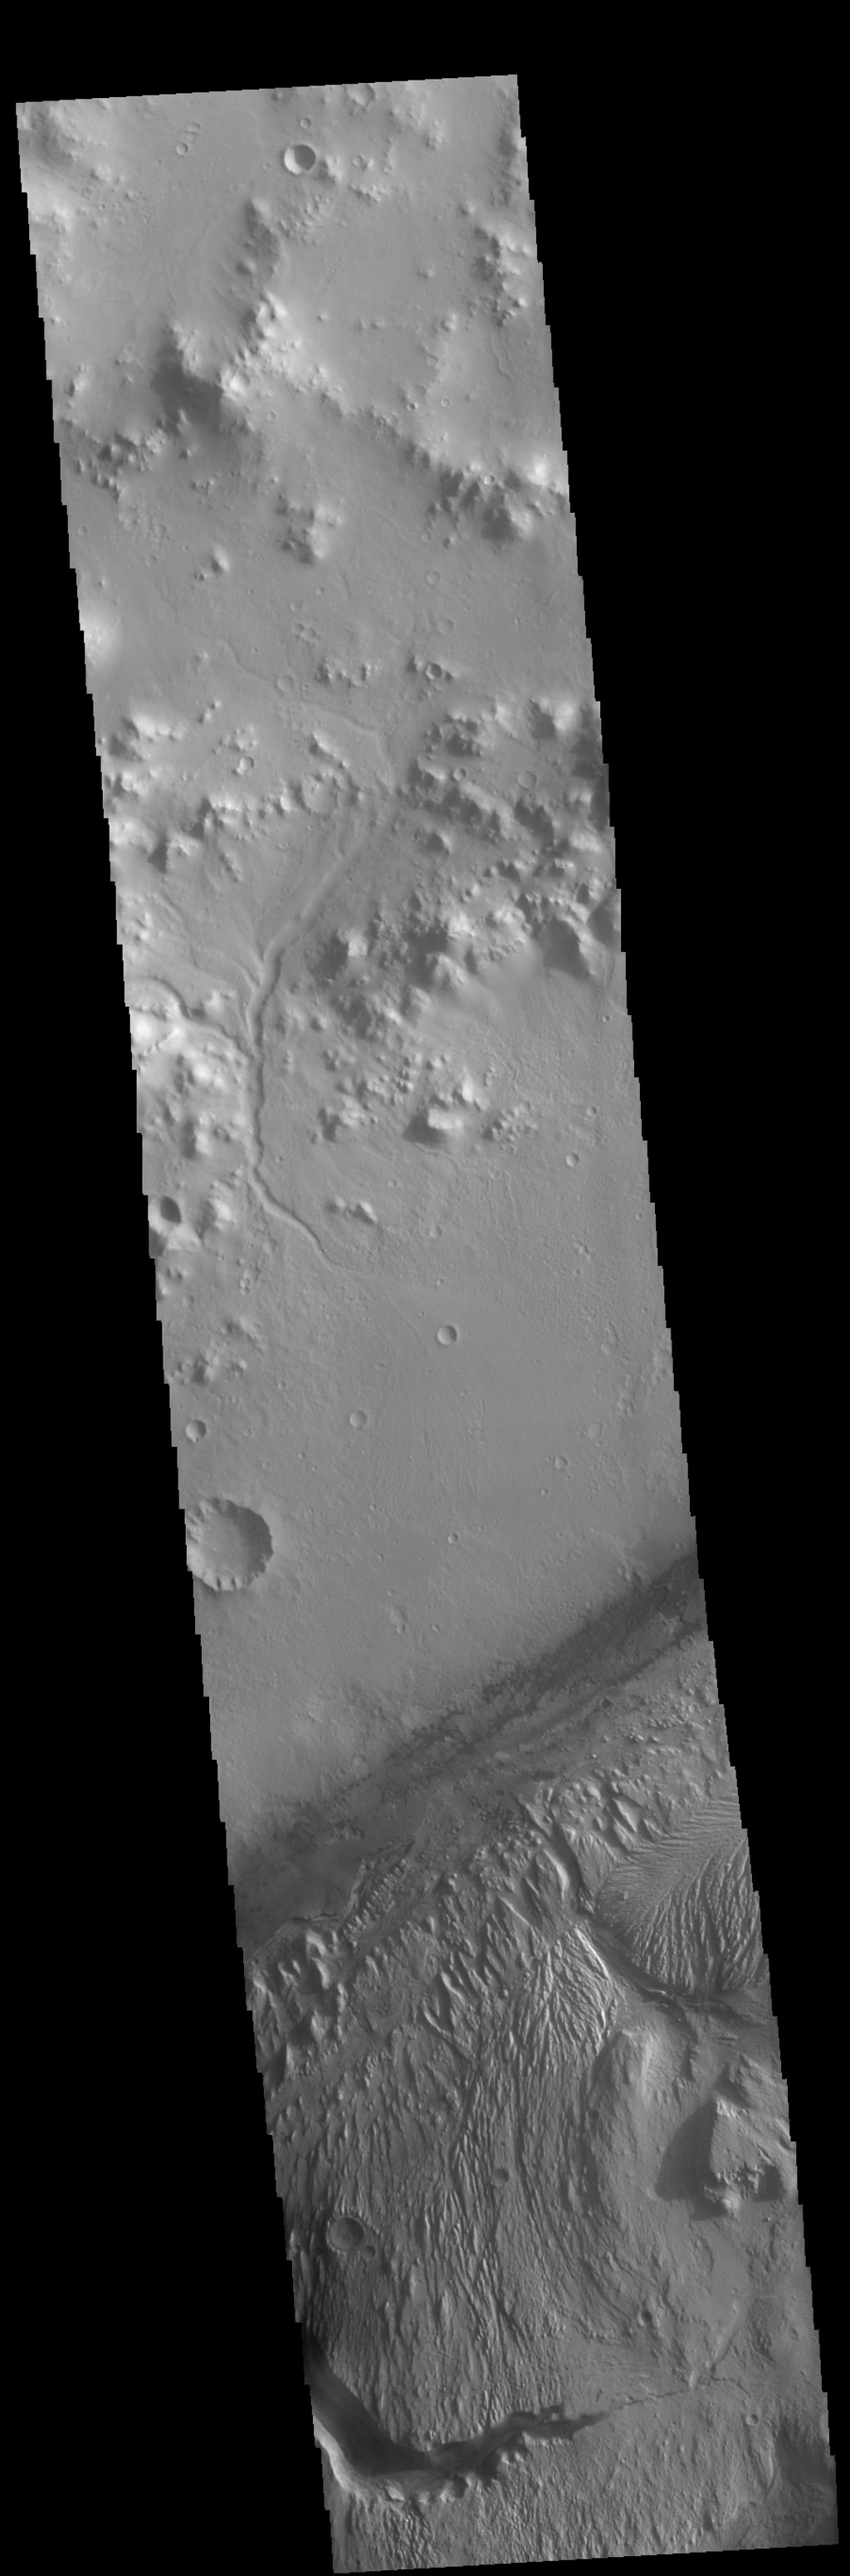 This image of Gale Crater from NASA's 2001 Mars Odyssey spacecraft shows part of the huge layered deposit that covers much of the crater floor. The top of the image shows part of the crater rim, including one of the many small channels.